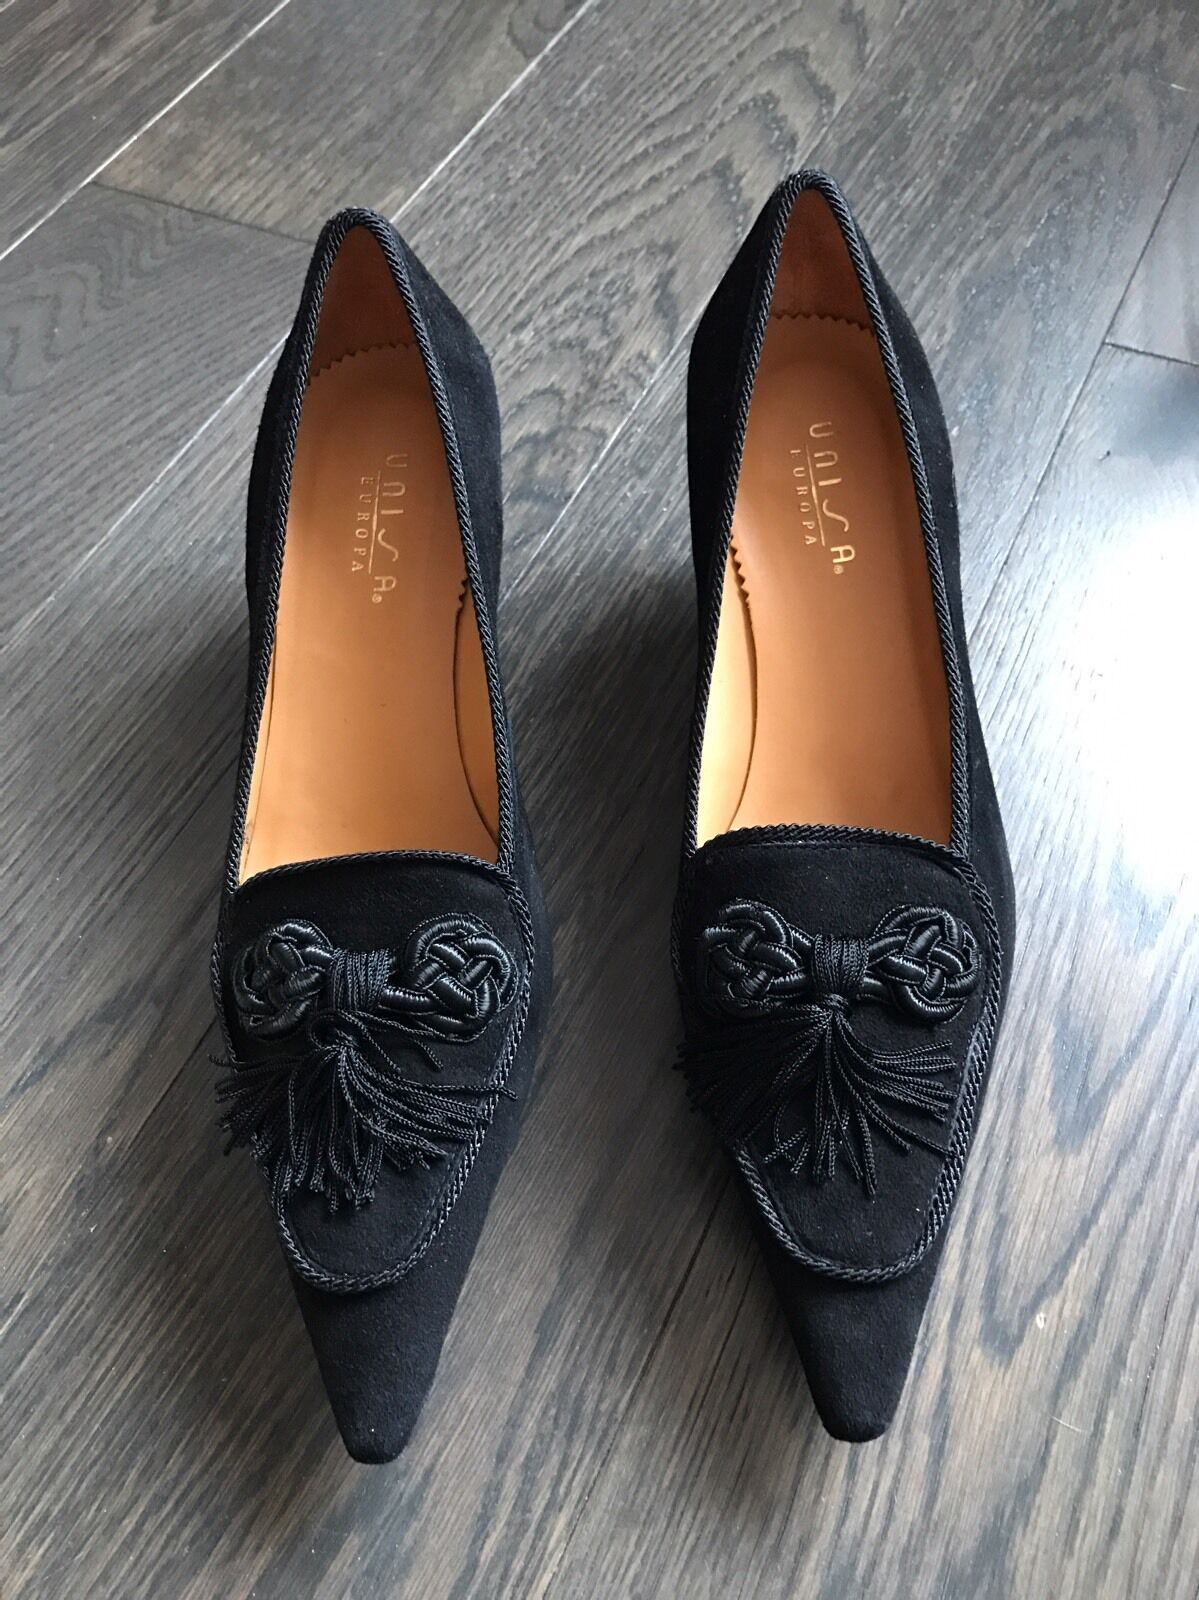 New Unisa Women Black Suede Shoes Size 37 7